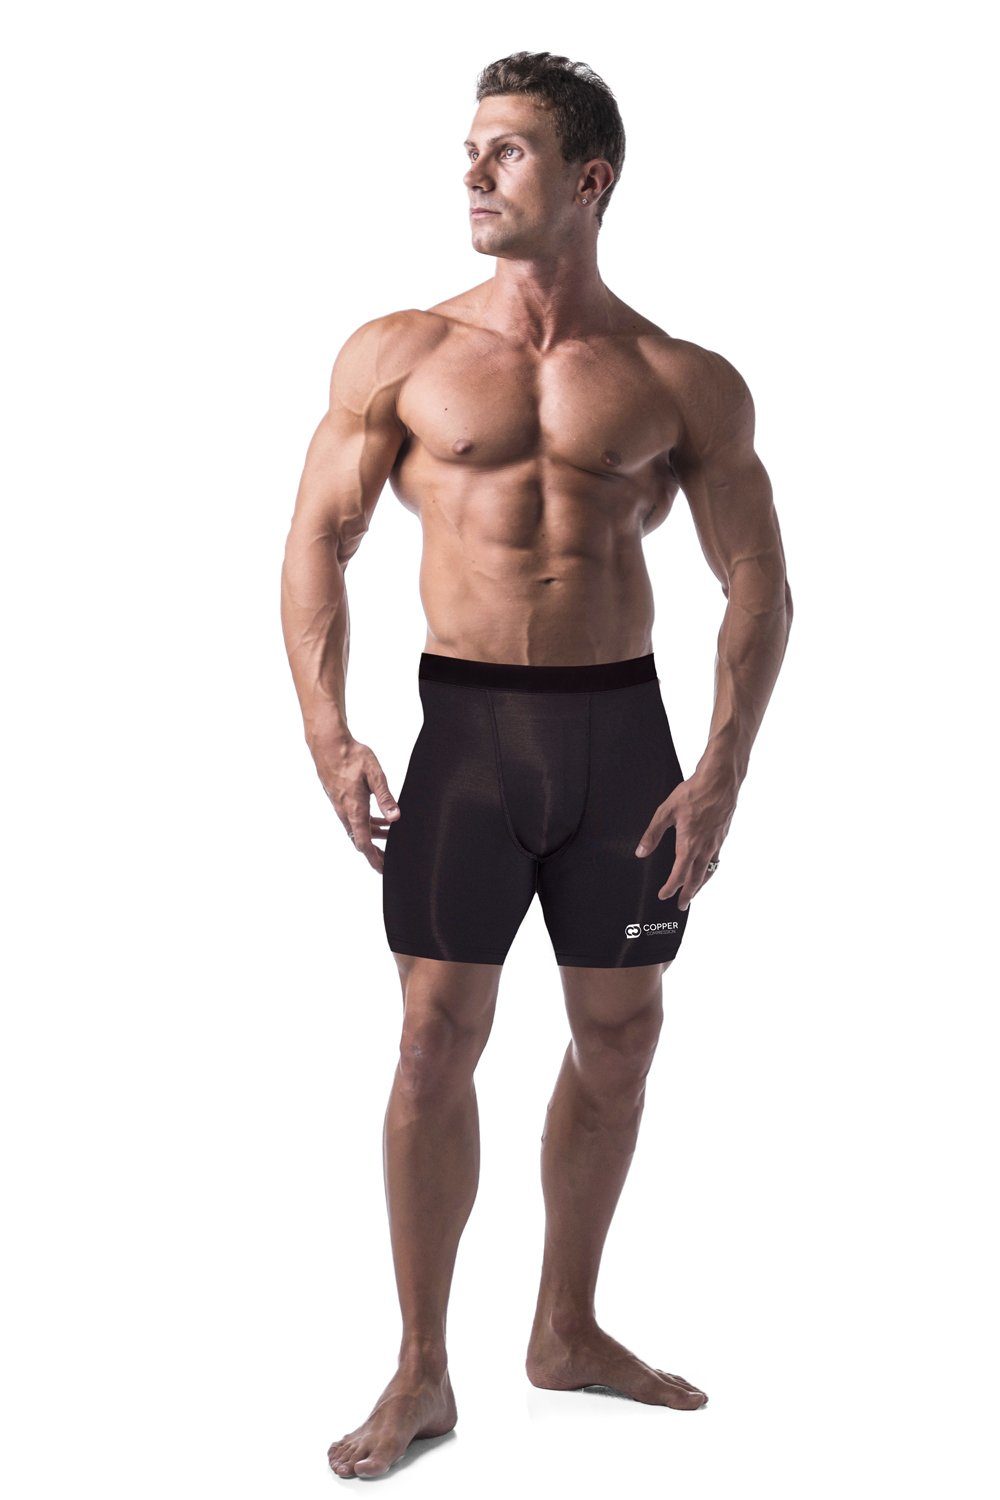 Copper Compression Recovery Shorts, Underwear, Tights, Boxer Briefs Fit For Men